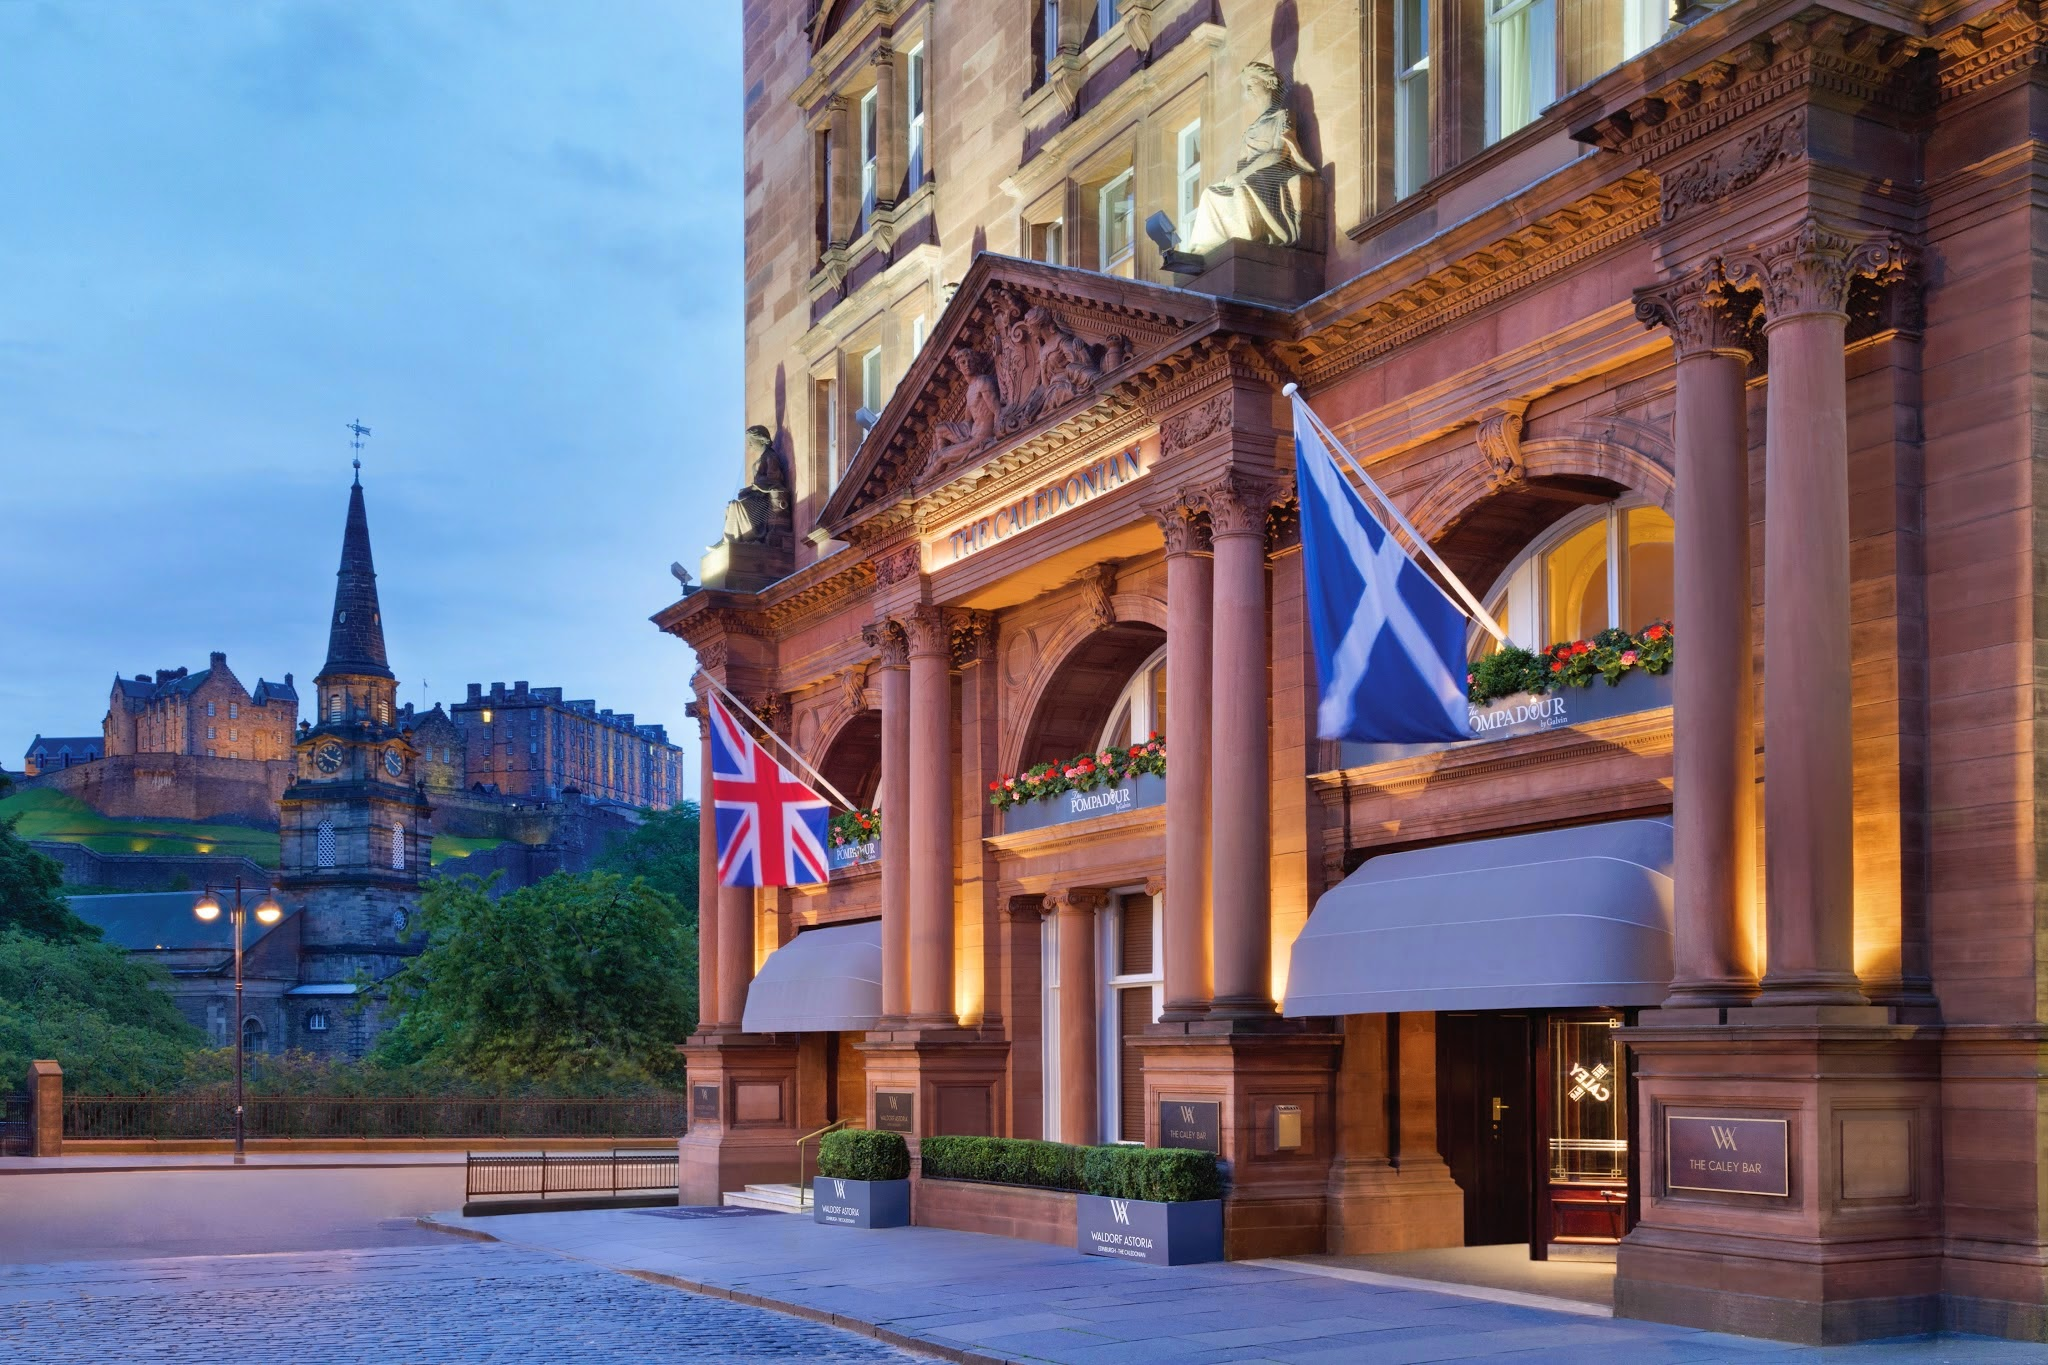 Waldorf Astoria Edinburgh - The Caledonian logo